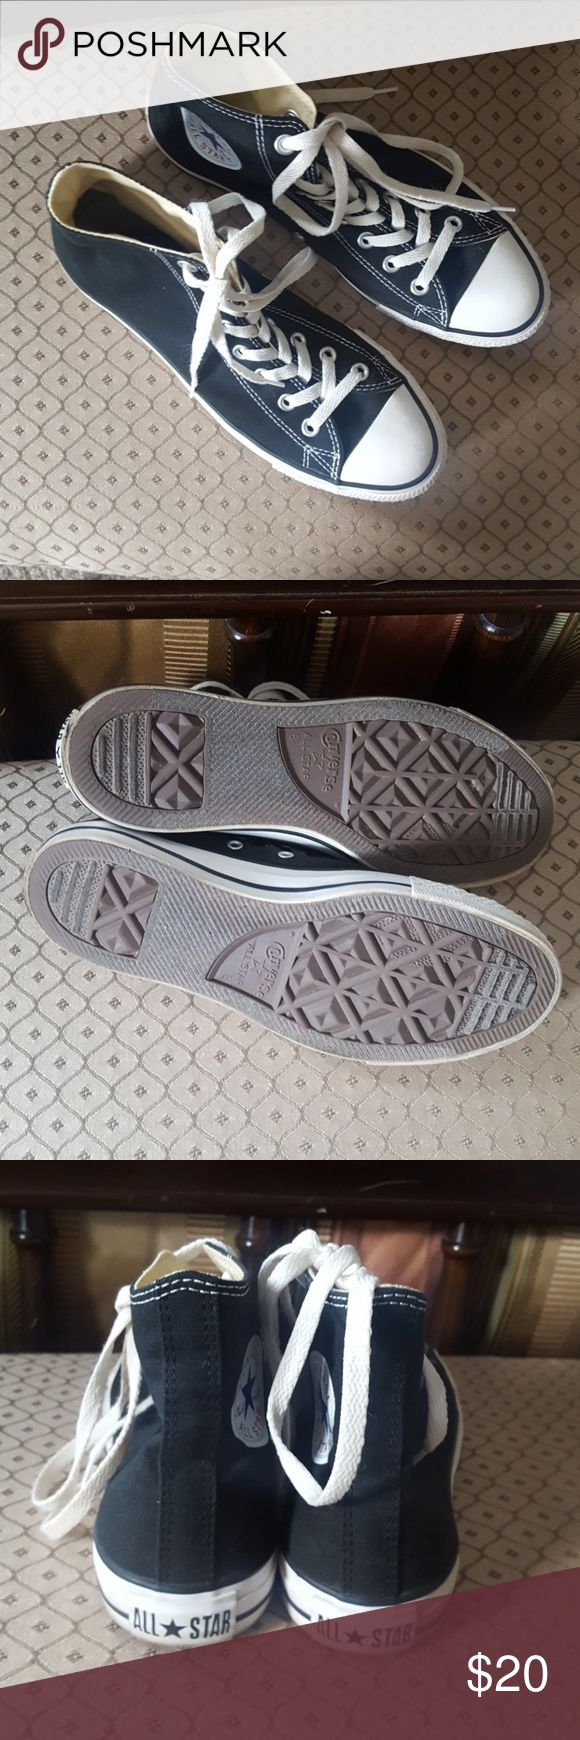 Converse Classics Great condition. 10 women's 8 men's. Bundle to save! Converse Shoes Sneakers